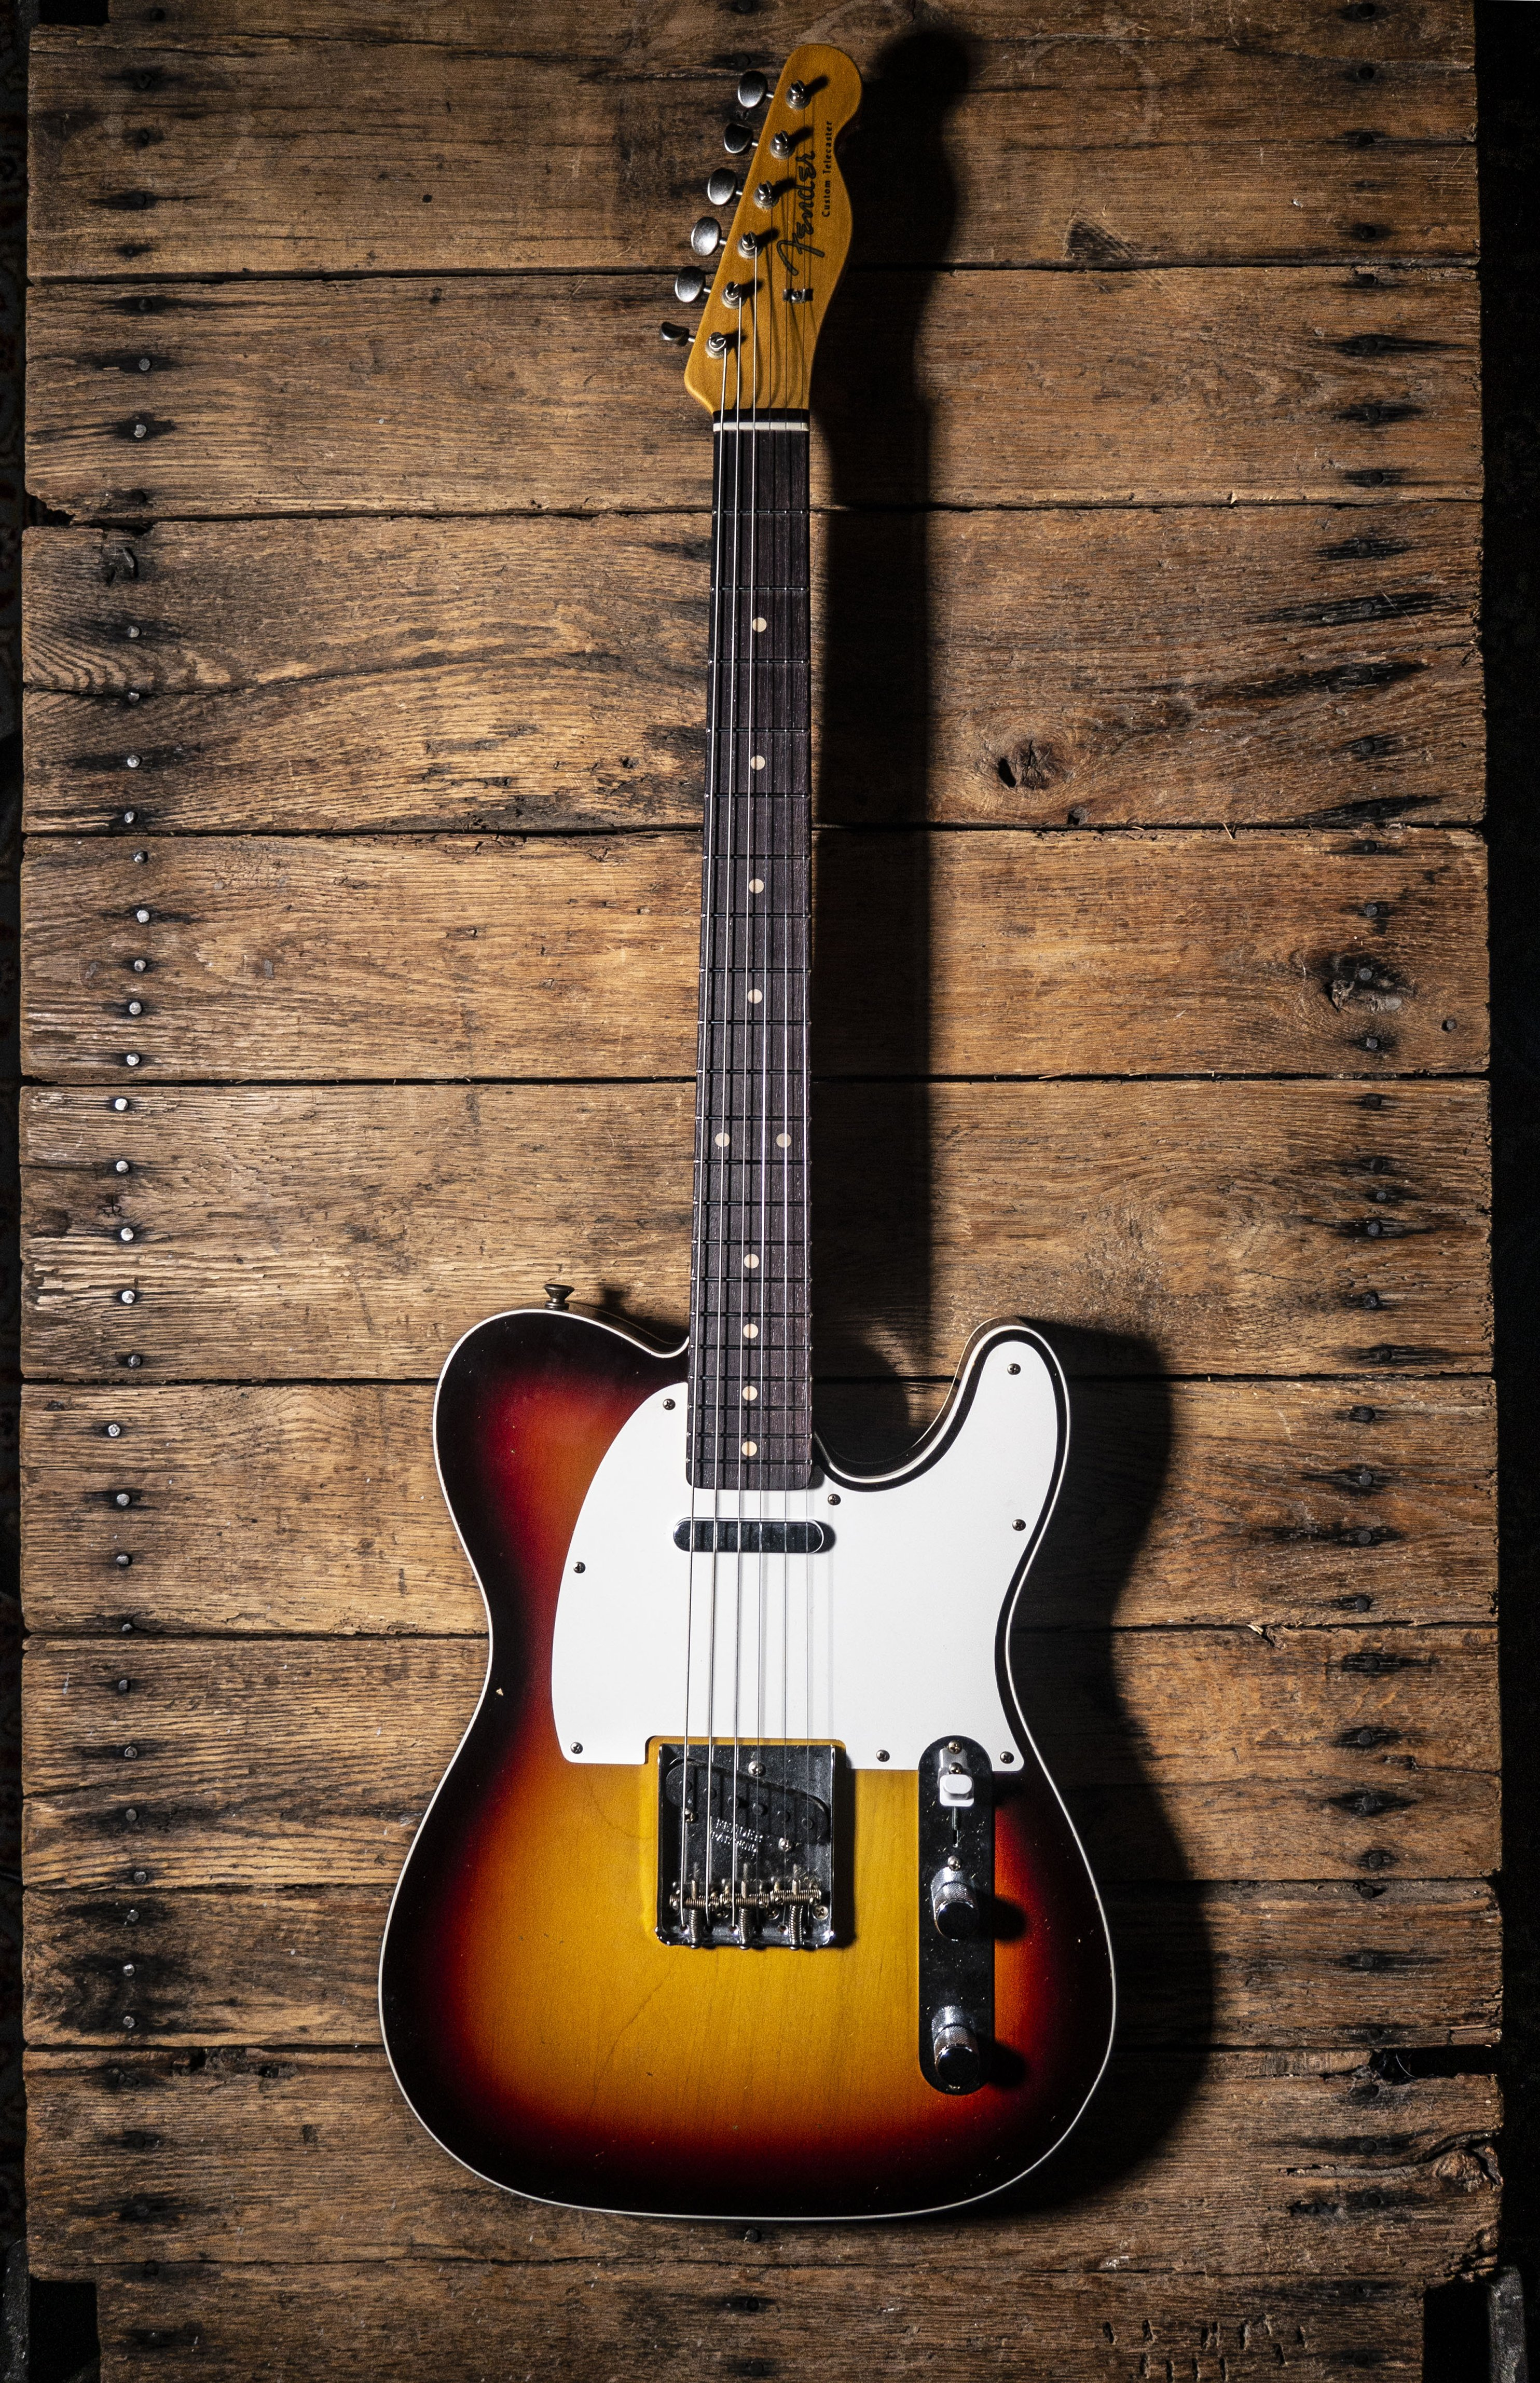 Fender Custom Shop Limited 1959 Telecaster Custom Chocolate 3 Tone Sunburst (Hand Selected)